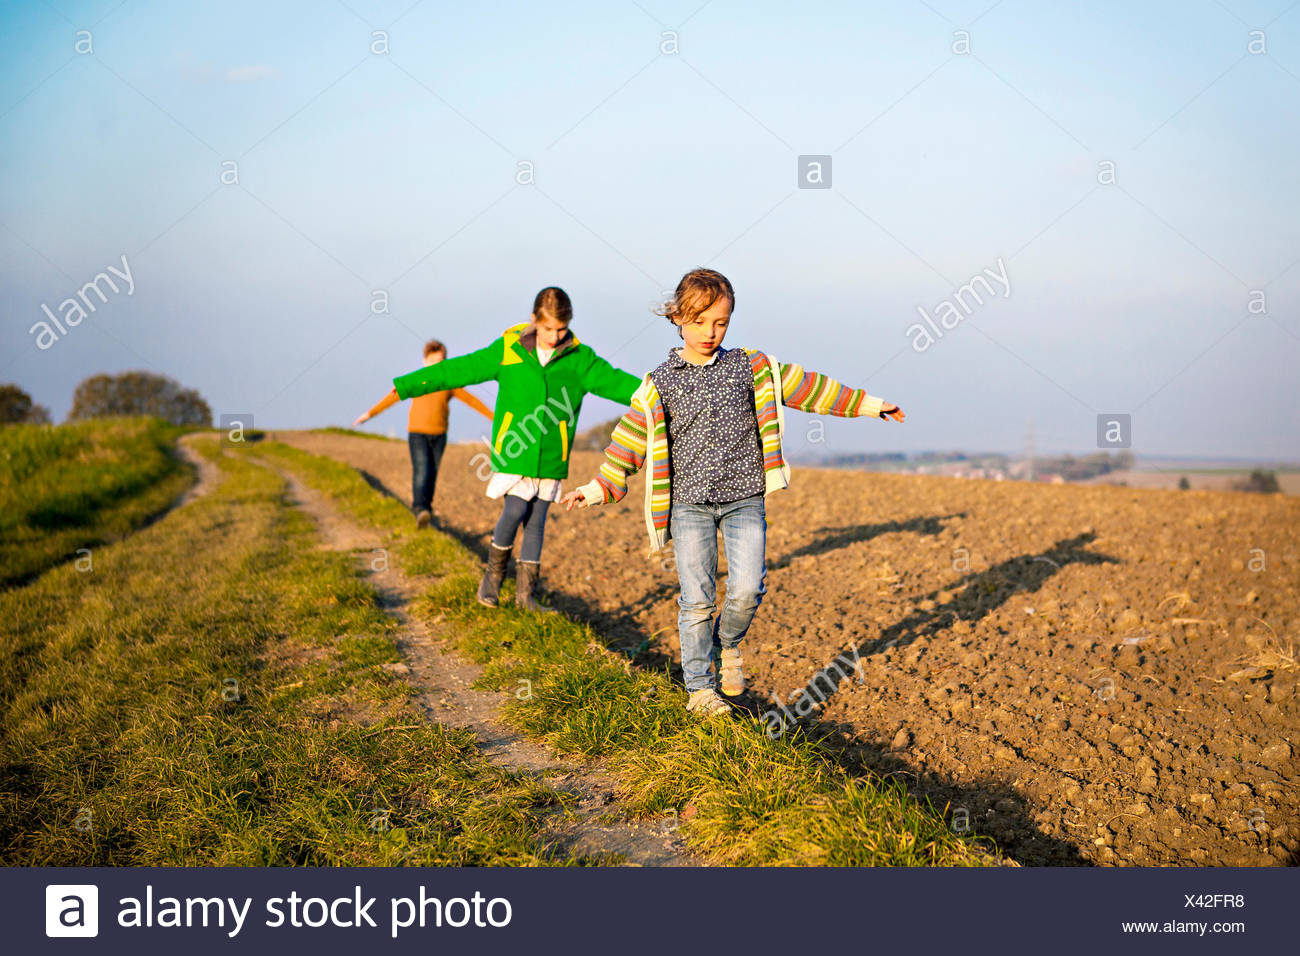 Three children playing outdoors - Stock Image